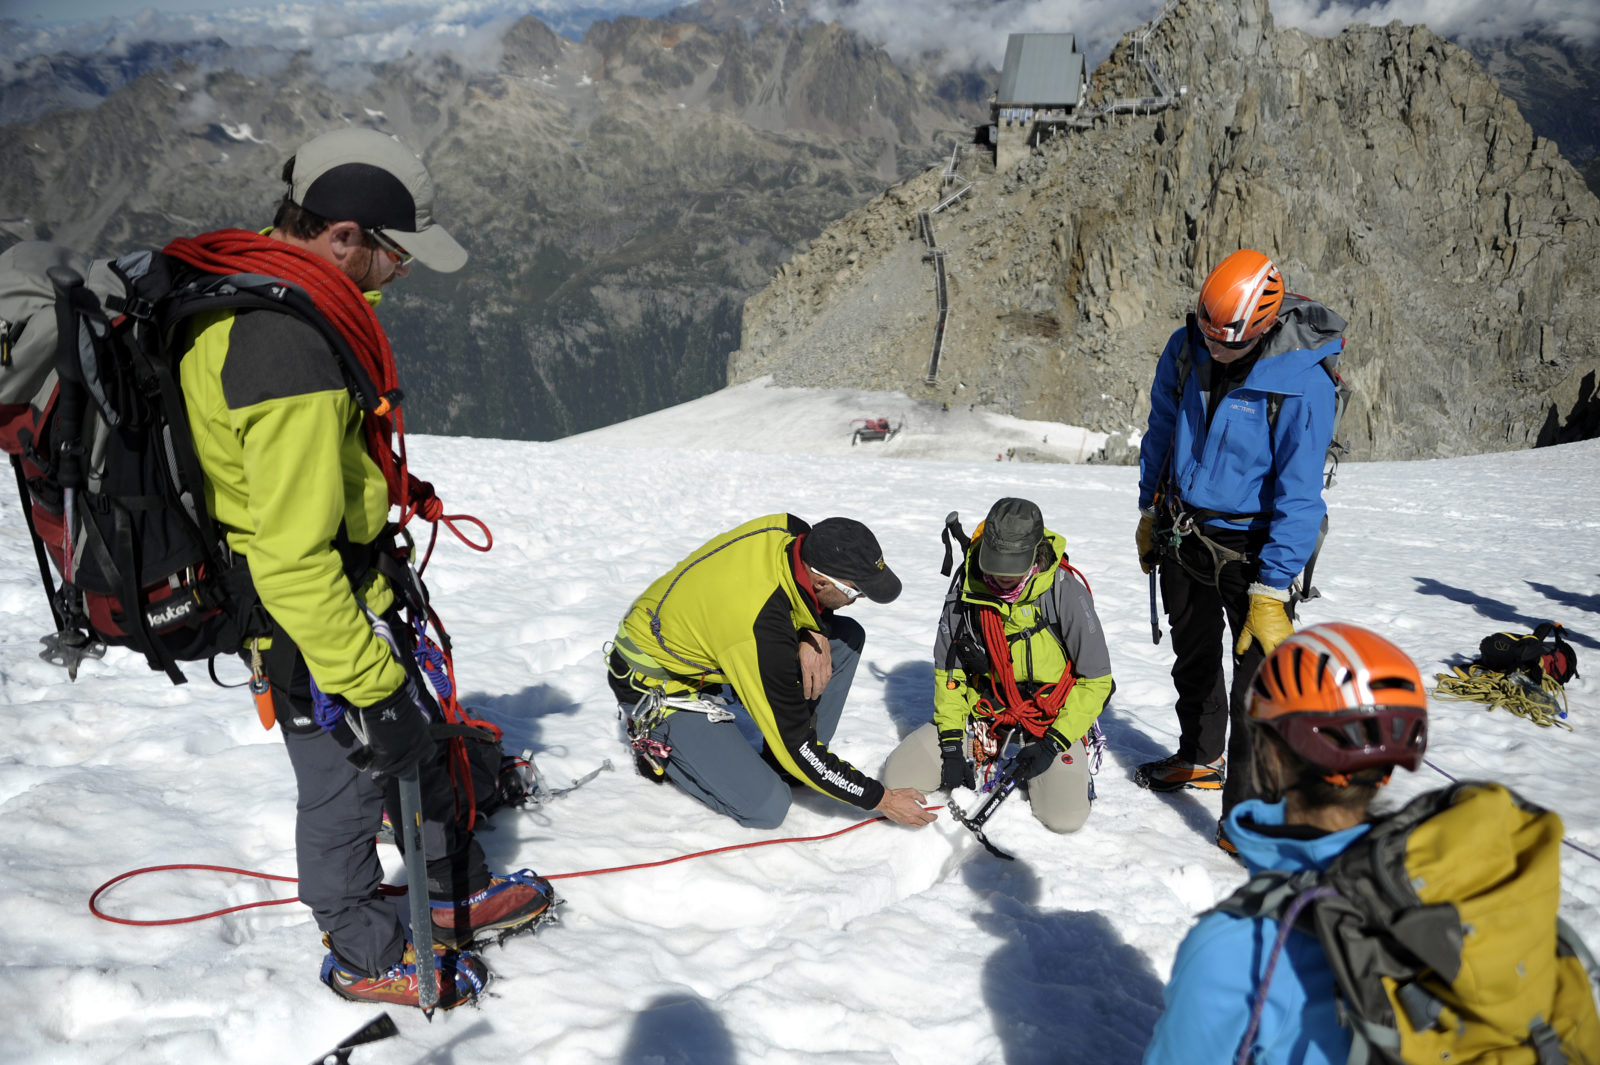 Alpinisme inscrit à l'UNESCO - alpinistes